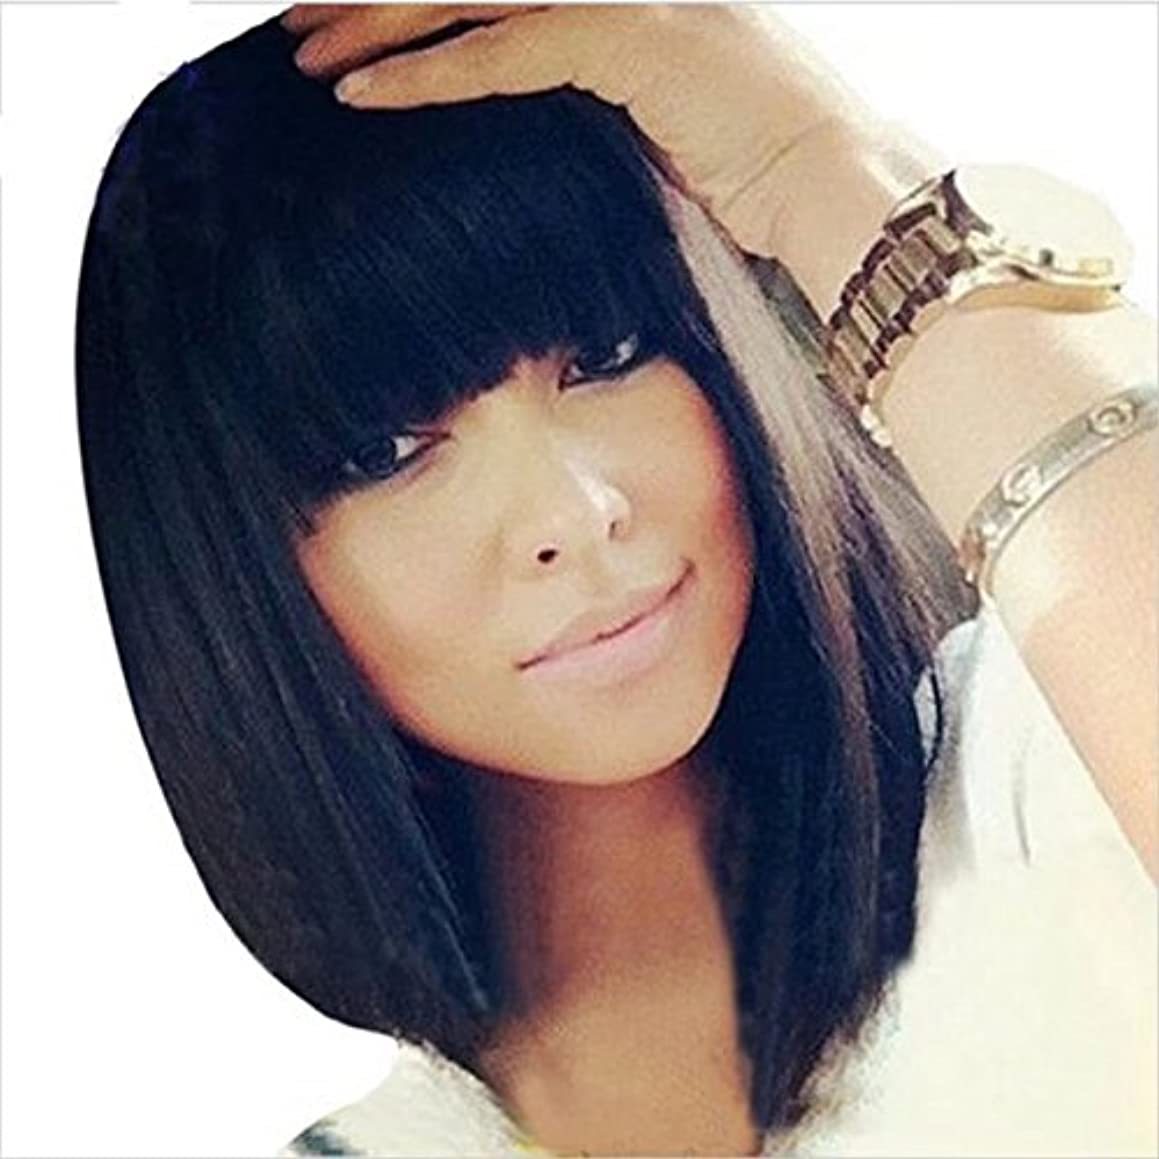 Ten Chopstics Short Bob Human Hair Full Lace Wig Full Bangs Glueless Short Brazilian Straight Human Hair Wig with Baby Hair for Black Woman 130 Density Lace front Bob Wigs